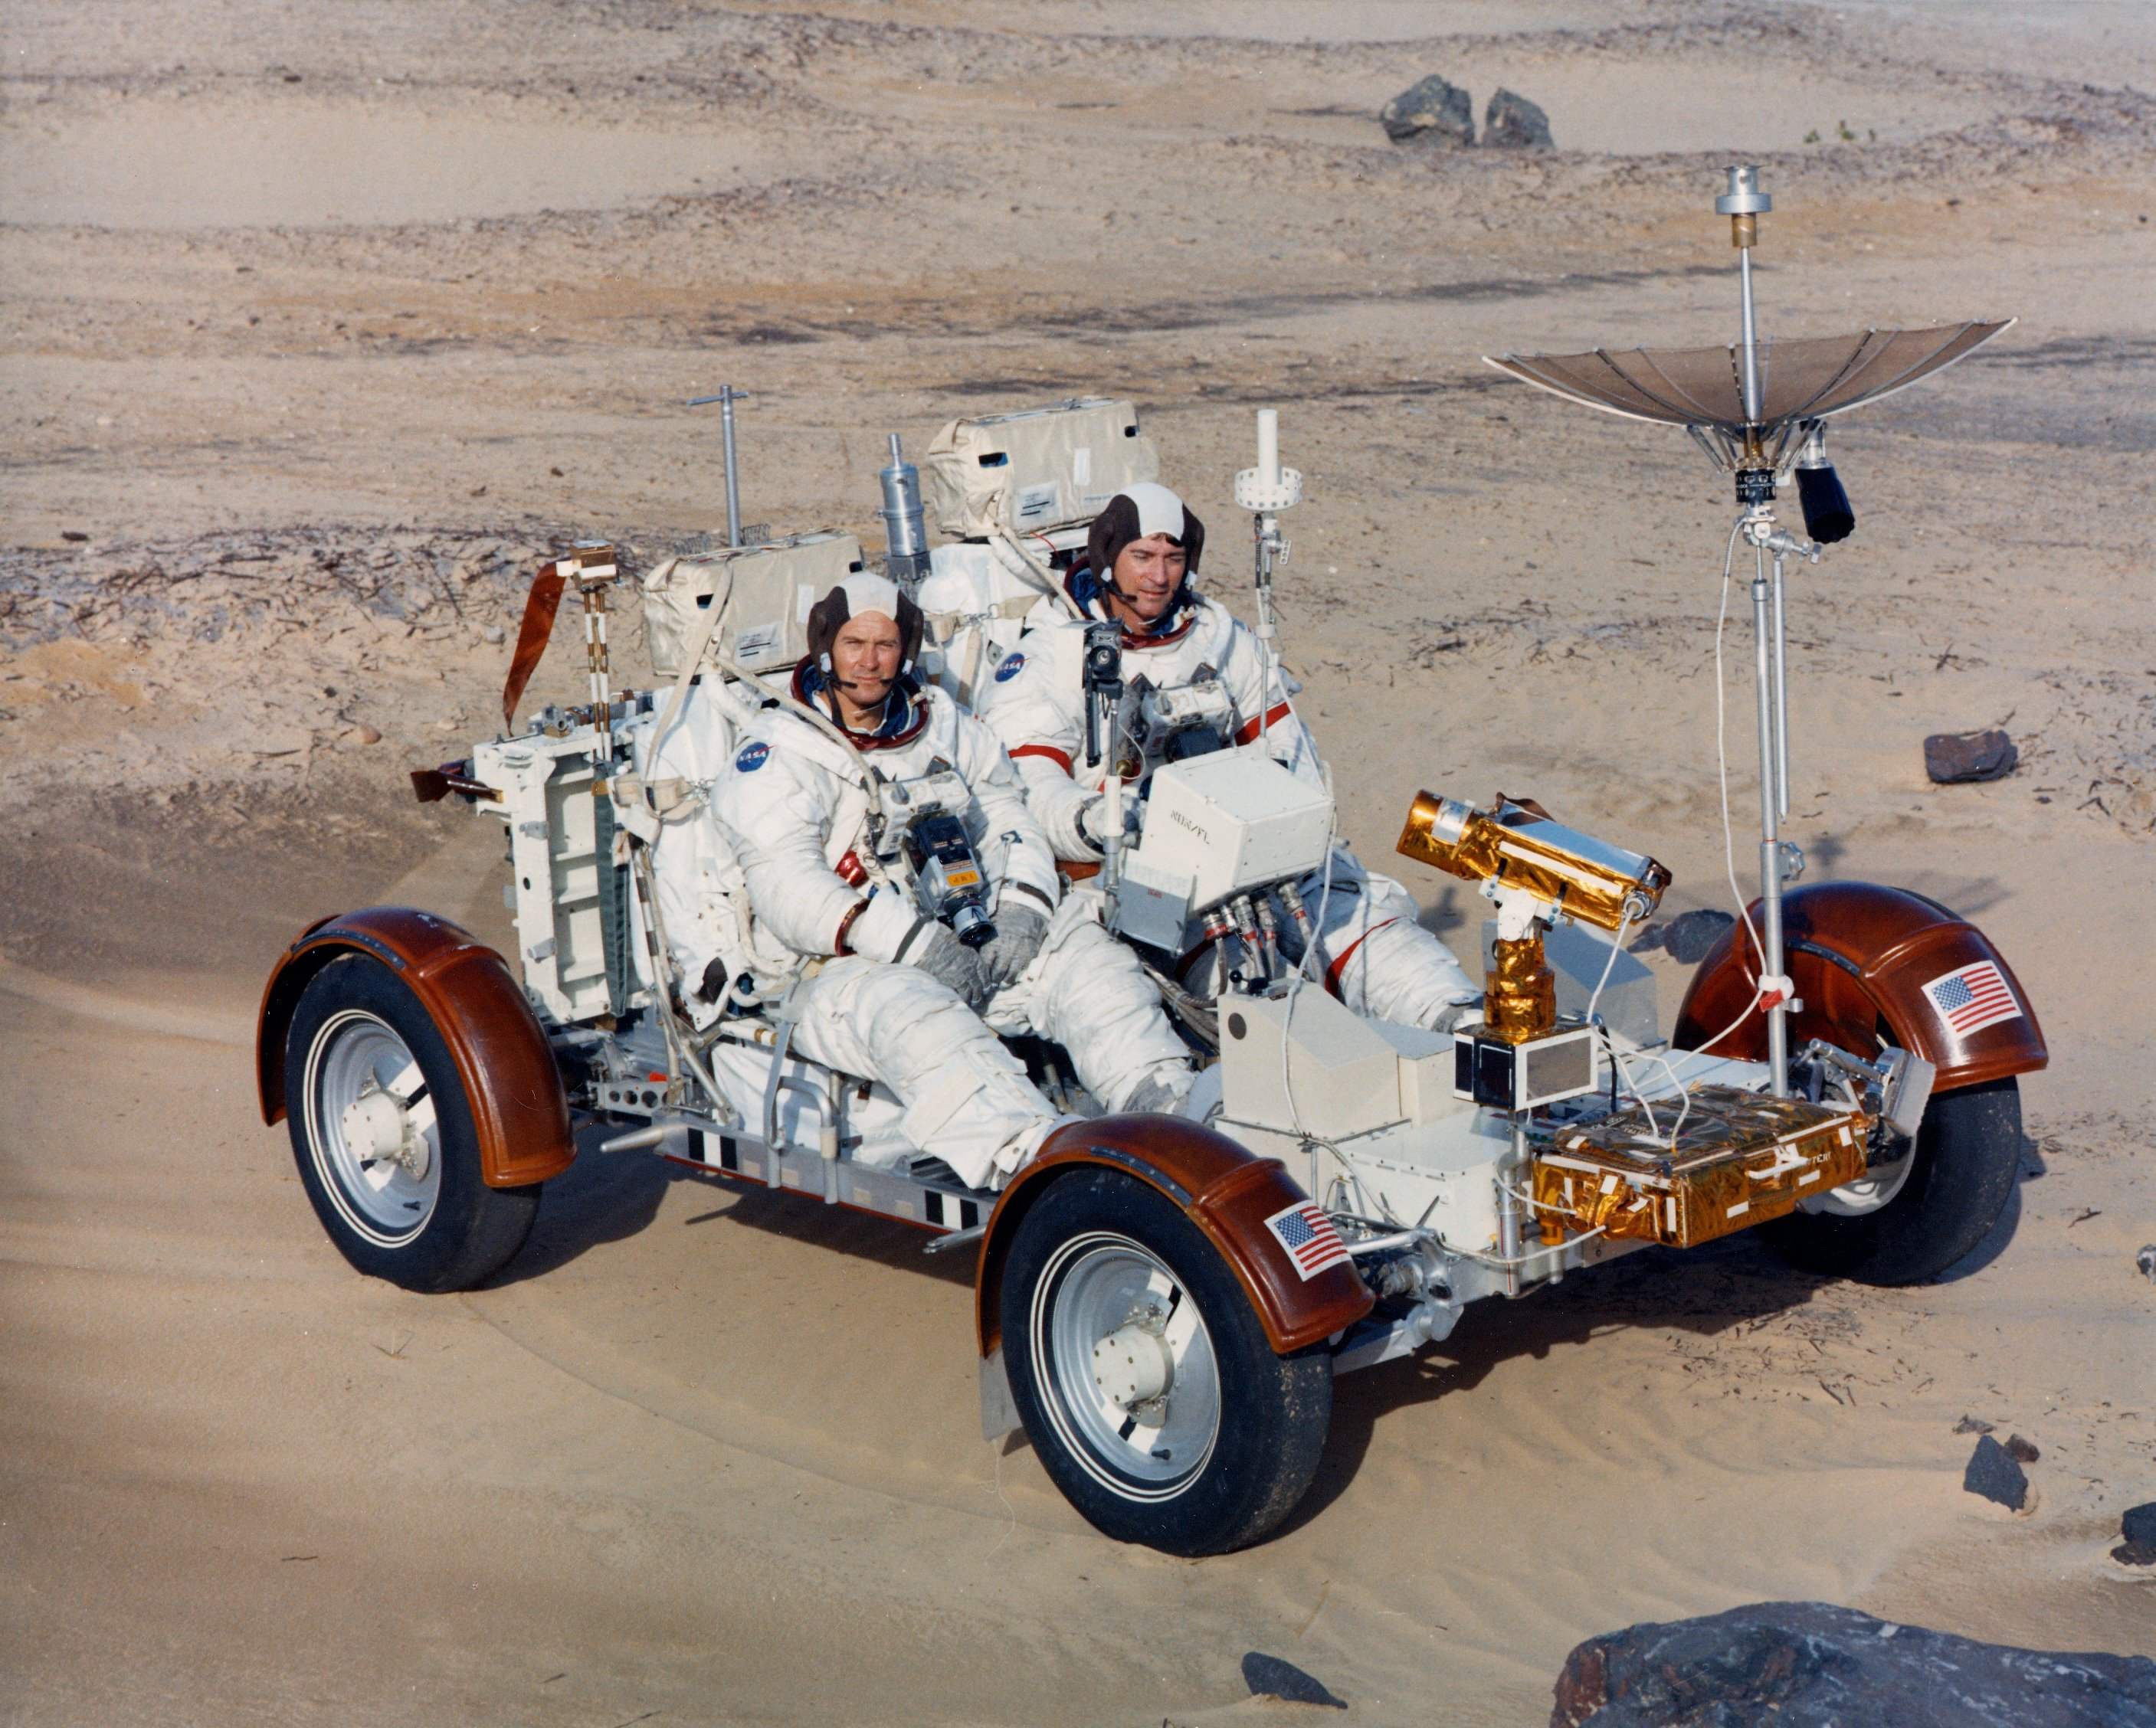 Moon_Buggy_Ap16-KSC-71PC-777